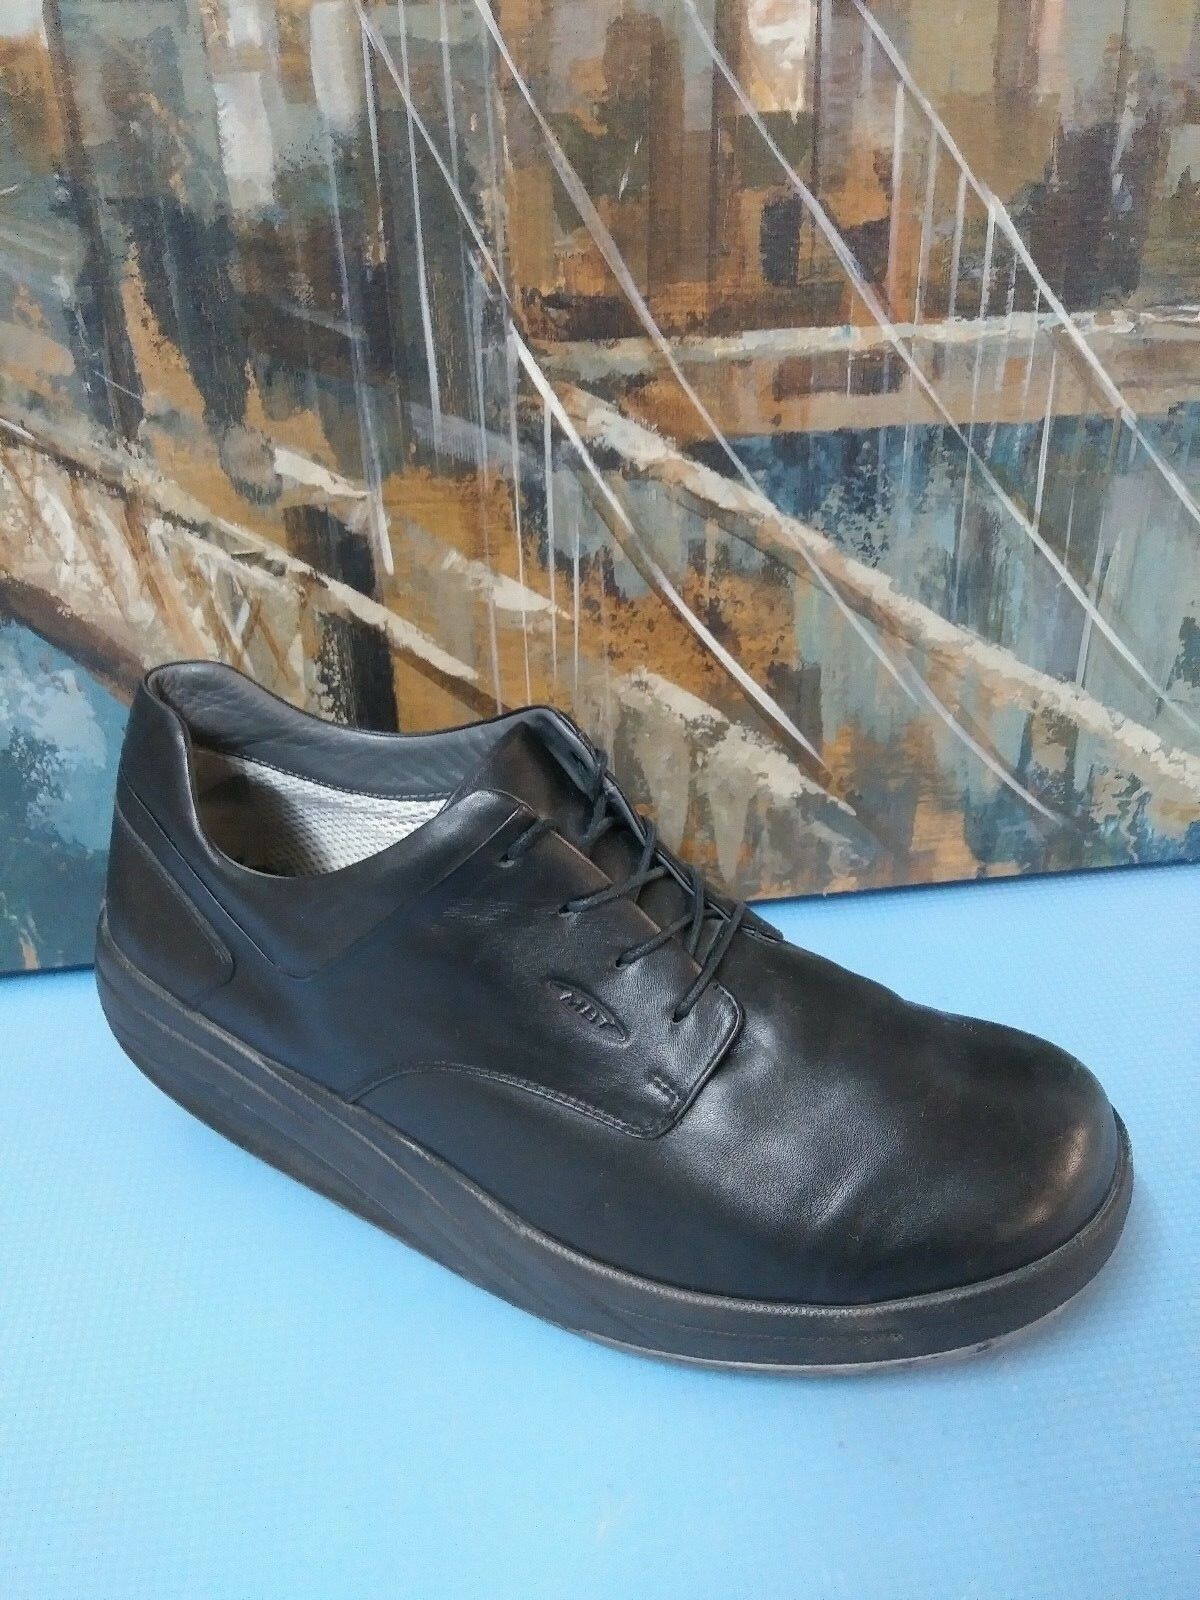 MBT KARANI M BLACK LEATHER THERAPEUTIC 11.5 WALKING Schuhe OXFORDS SIZE 11.5 THERAPEUTIC 73ea3a